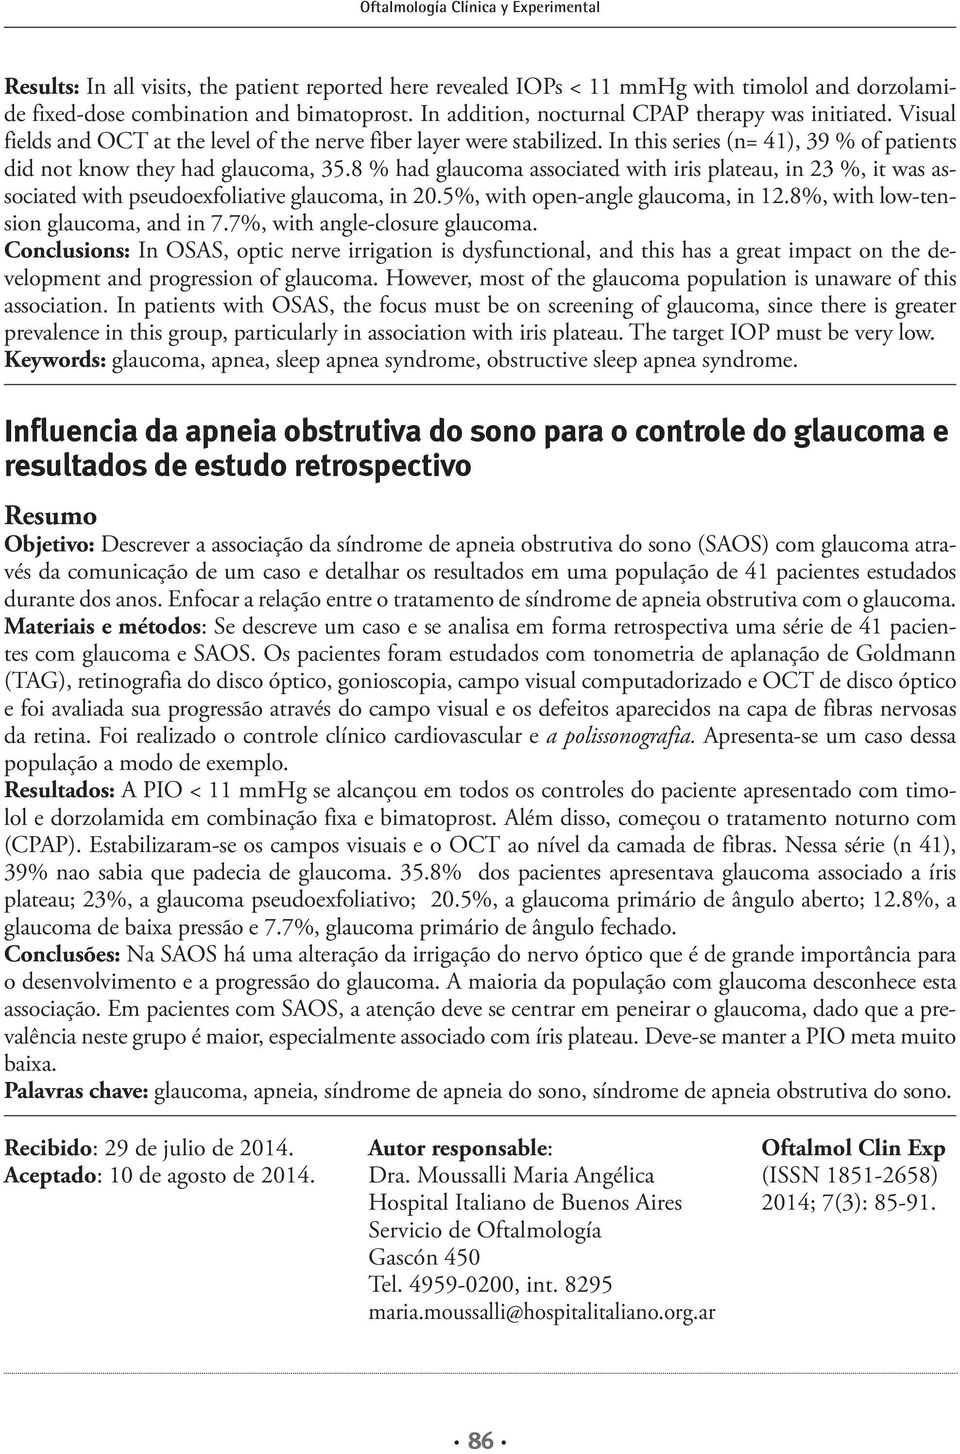 8 % had glaucoma associated with iris plateau, in 23 %, it was associated with pseudoexfoliative glaucoma, in 20.5%, with open-angle glaucoma, in 12.8%, with low-tension glaucoma, and in 7.